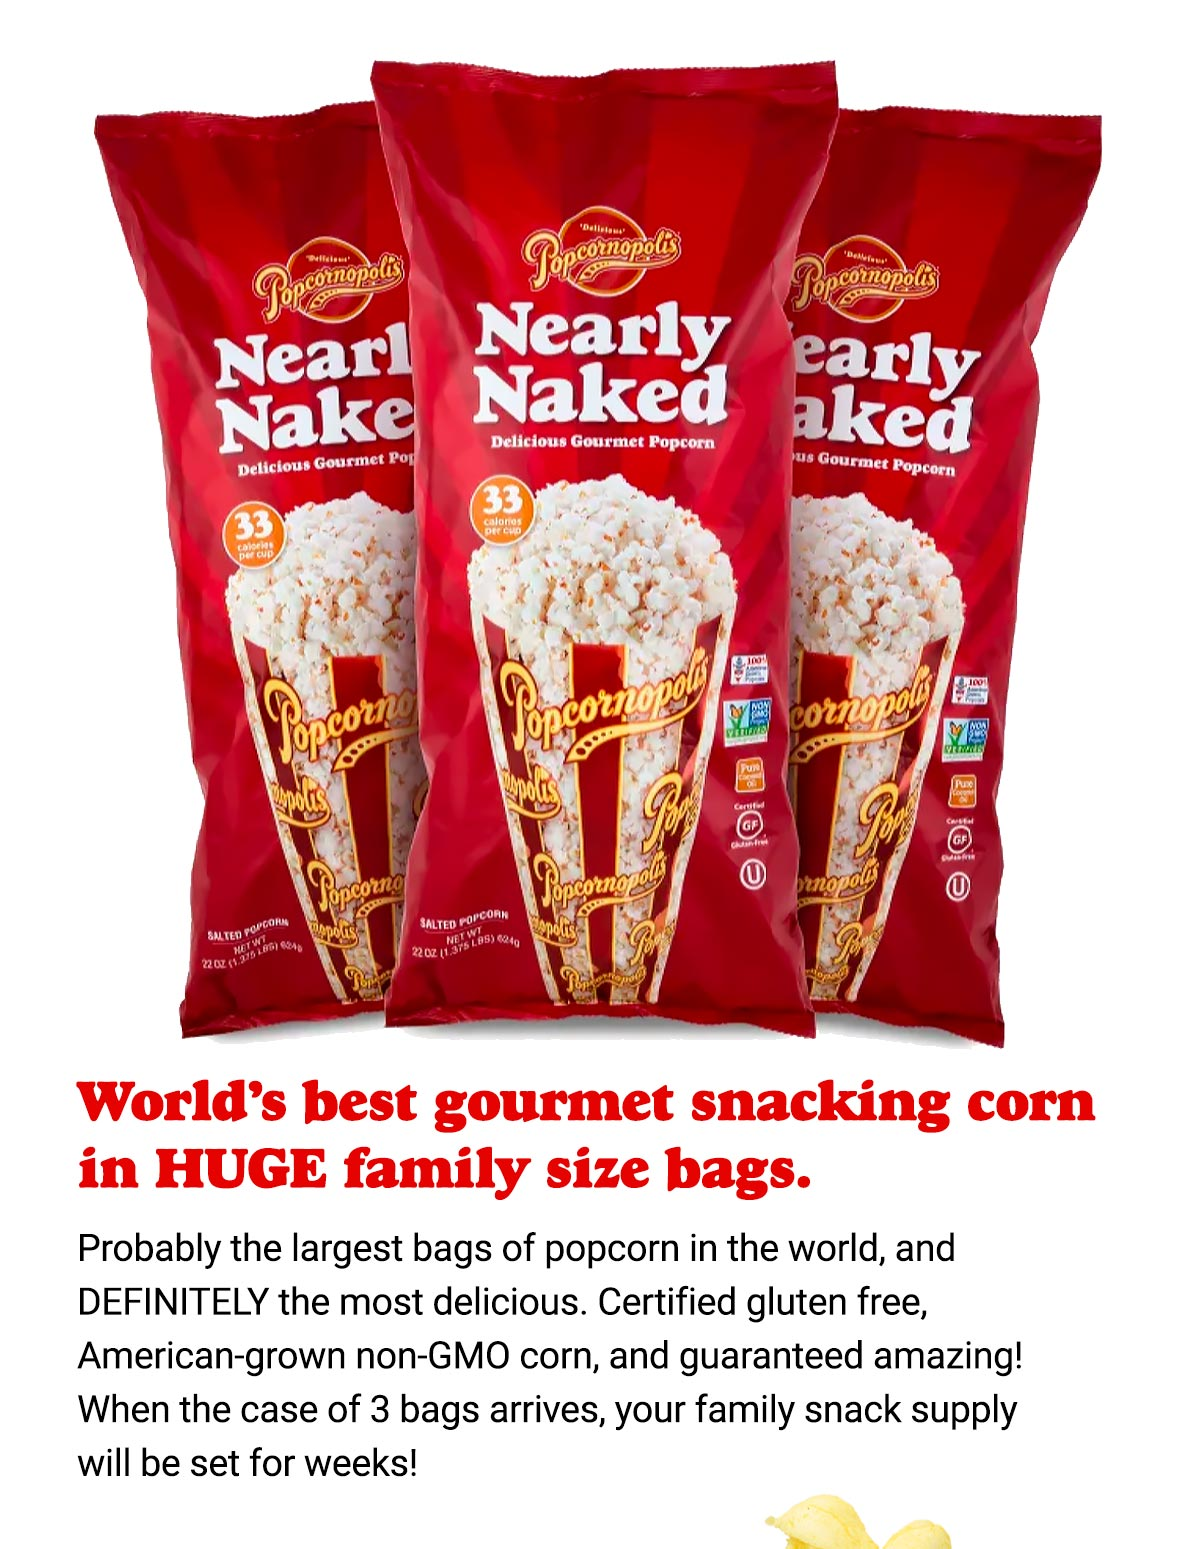 Nearly Naked in the Huge Bags Ships FREE!